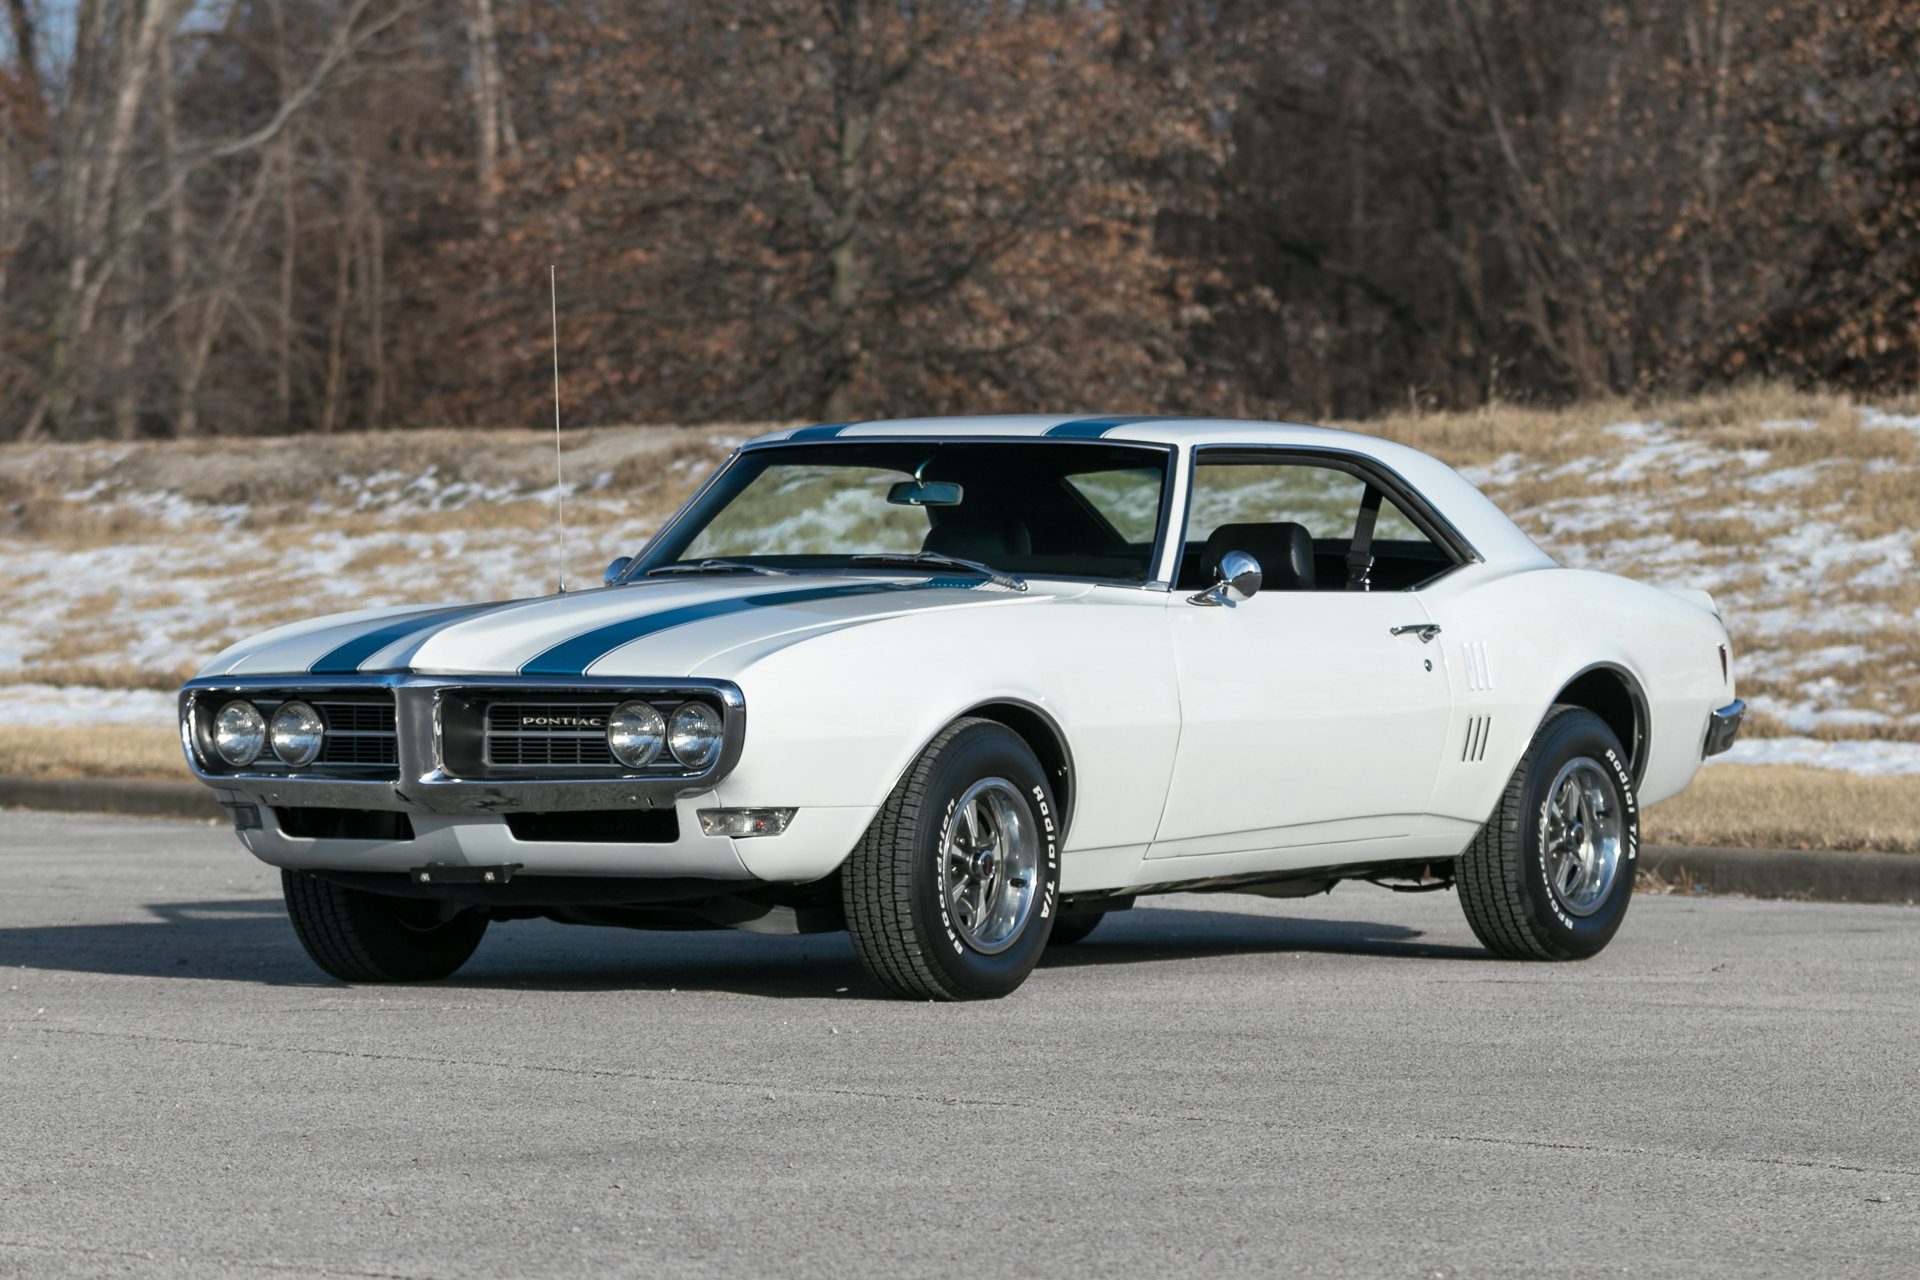 1968 pontiac firebird fast lane classic cars. Black Bedroom Furniture Sets. Home Design Ideas